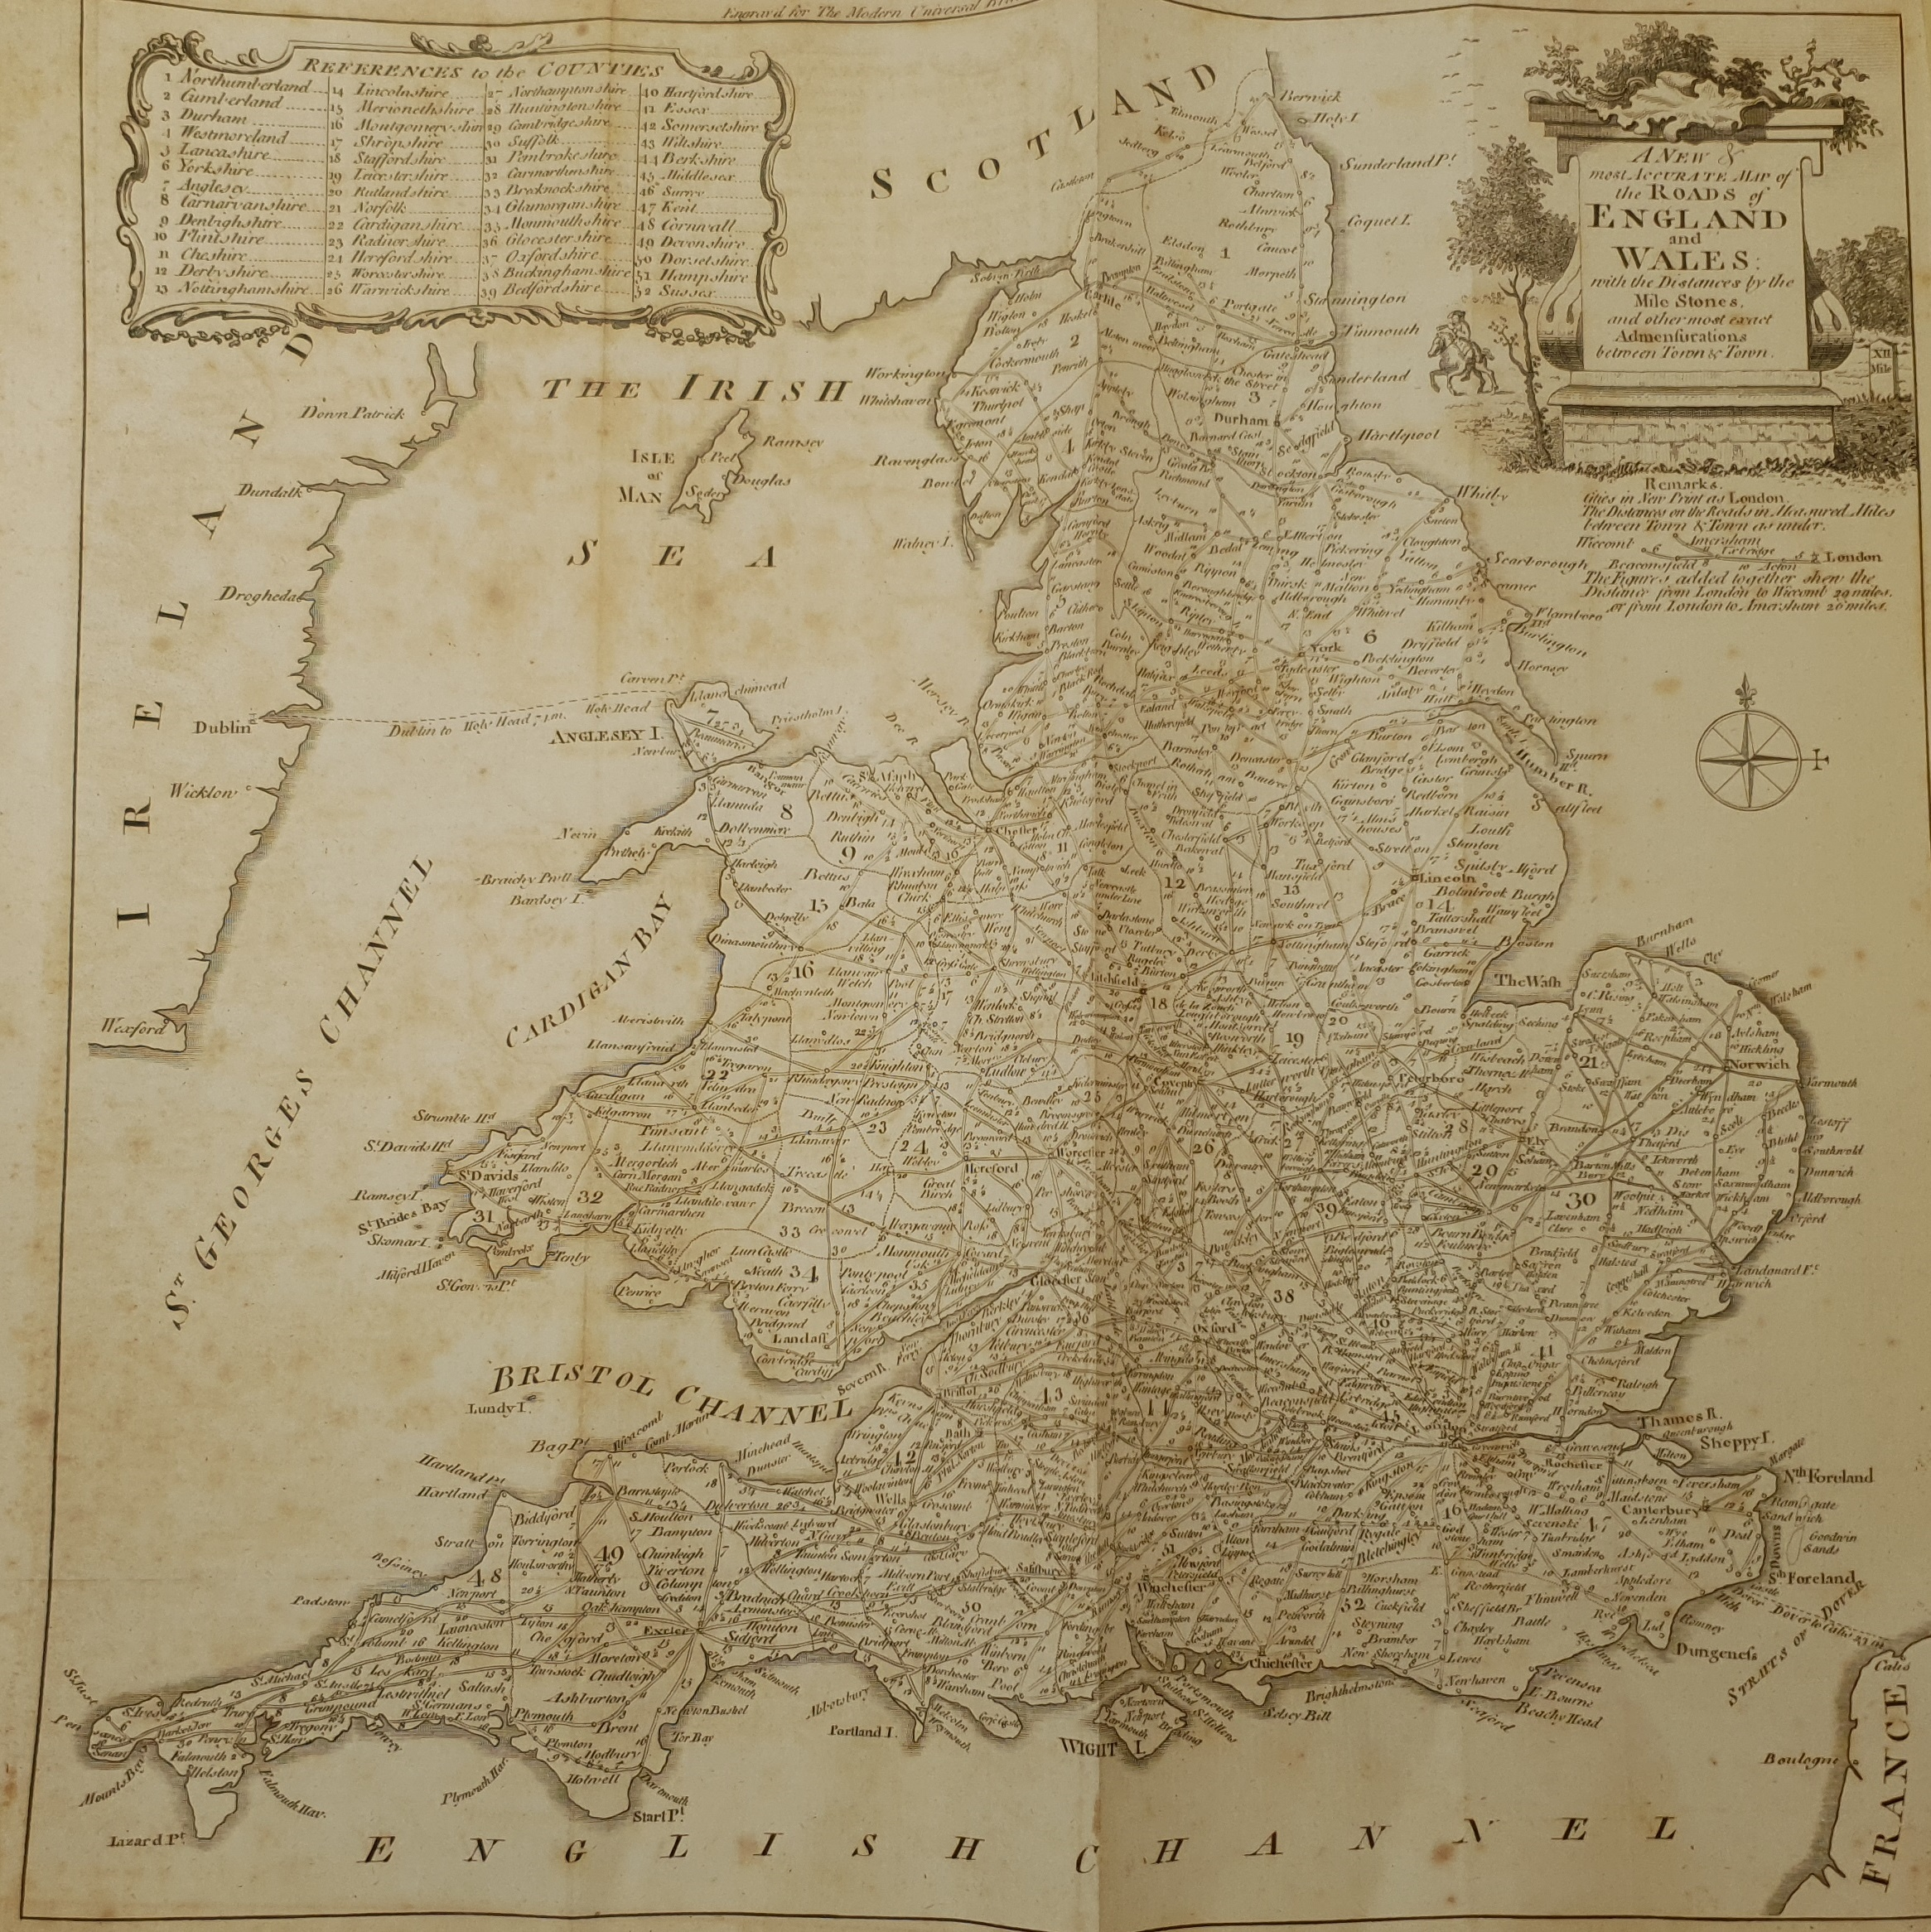 After Thomas Kitchin (British 1719-1784): 'A New and Most Accurate Map of the Roads of England and W